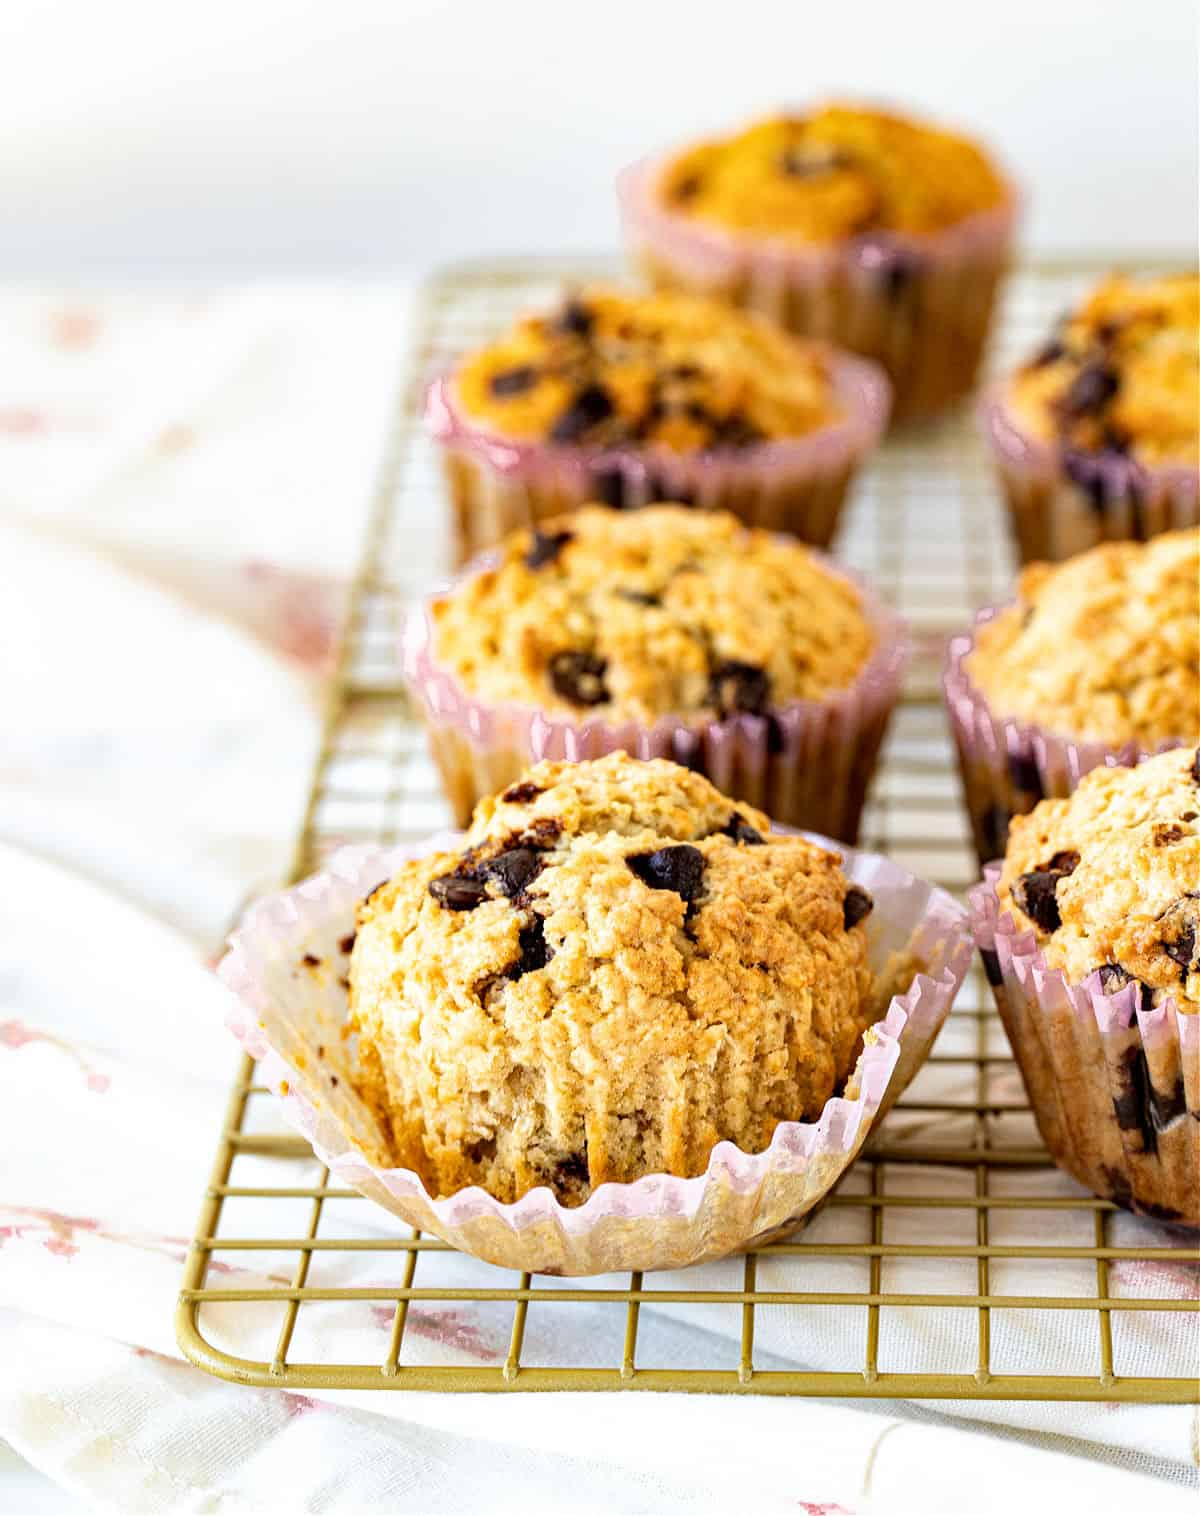 Rows of oatmeal chocolate chip muffins on golden wire rack